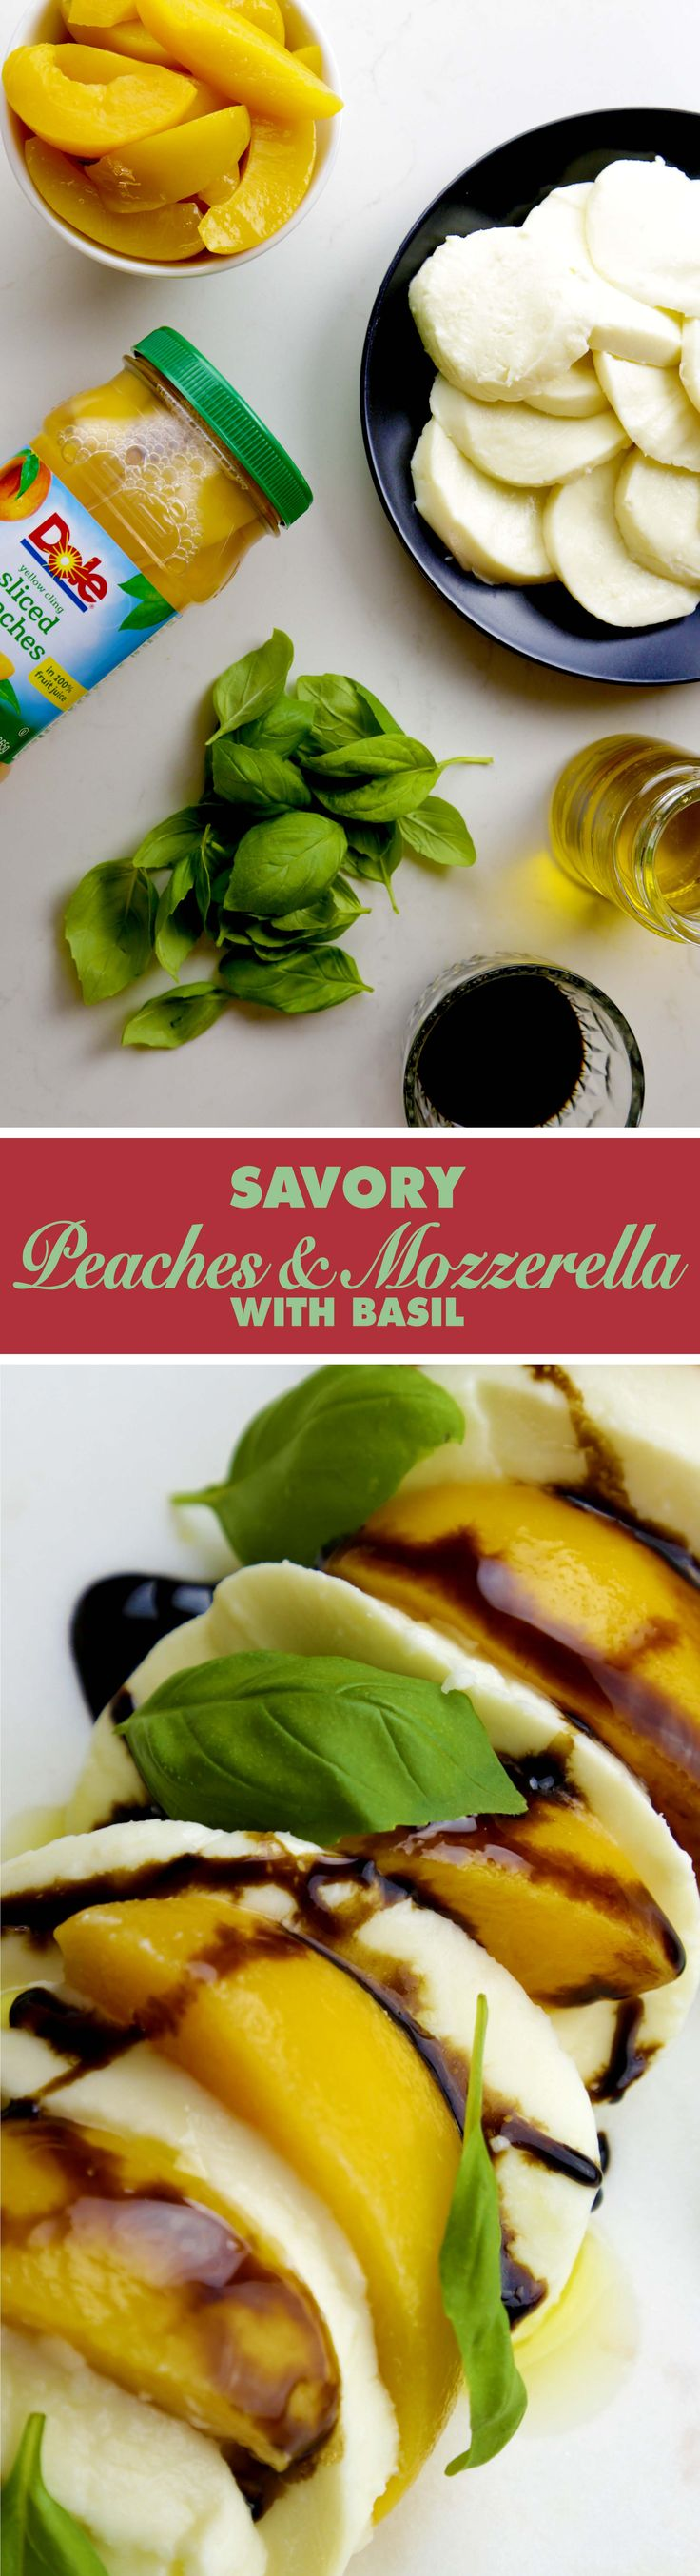 DOLE® Jarred Sliced Peaches, mozzarella, and fresh basil drizzled with olive oil and balsamic vinegar - need we say more?